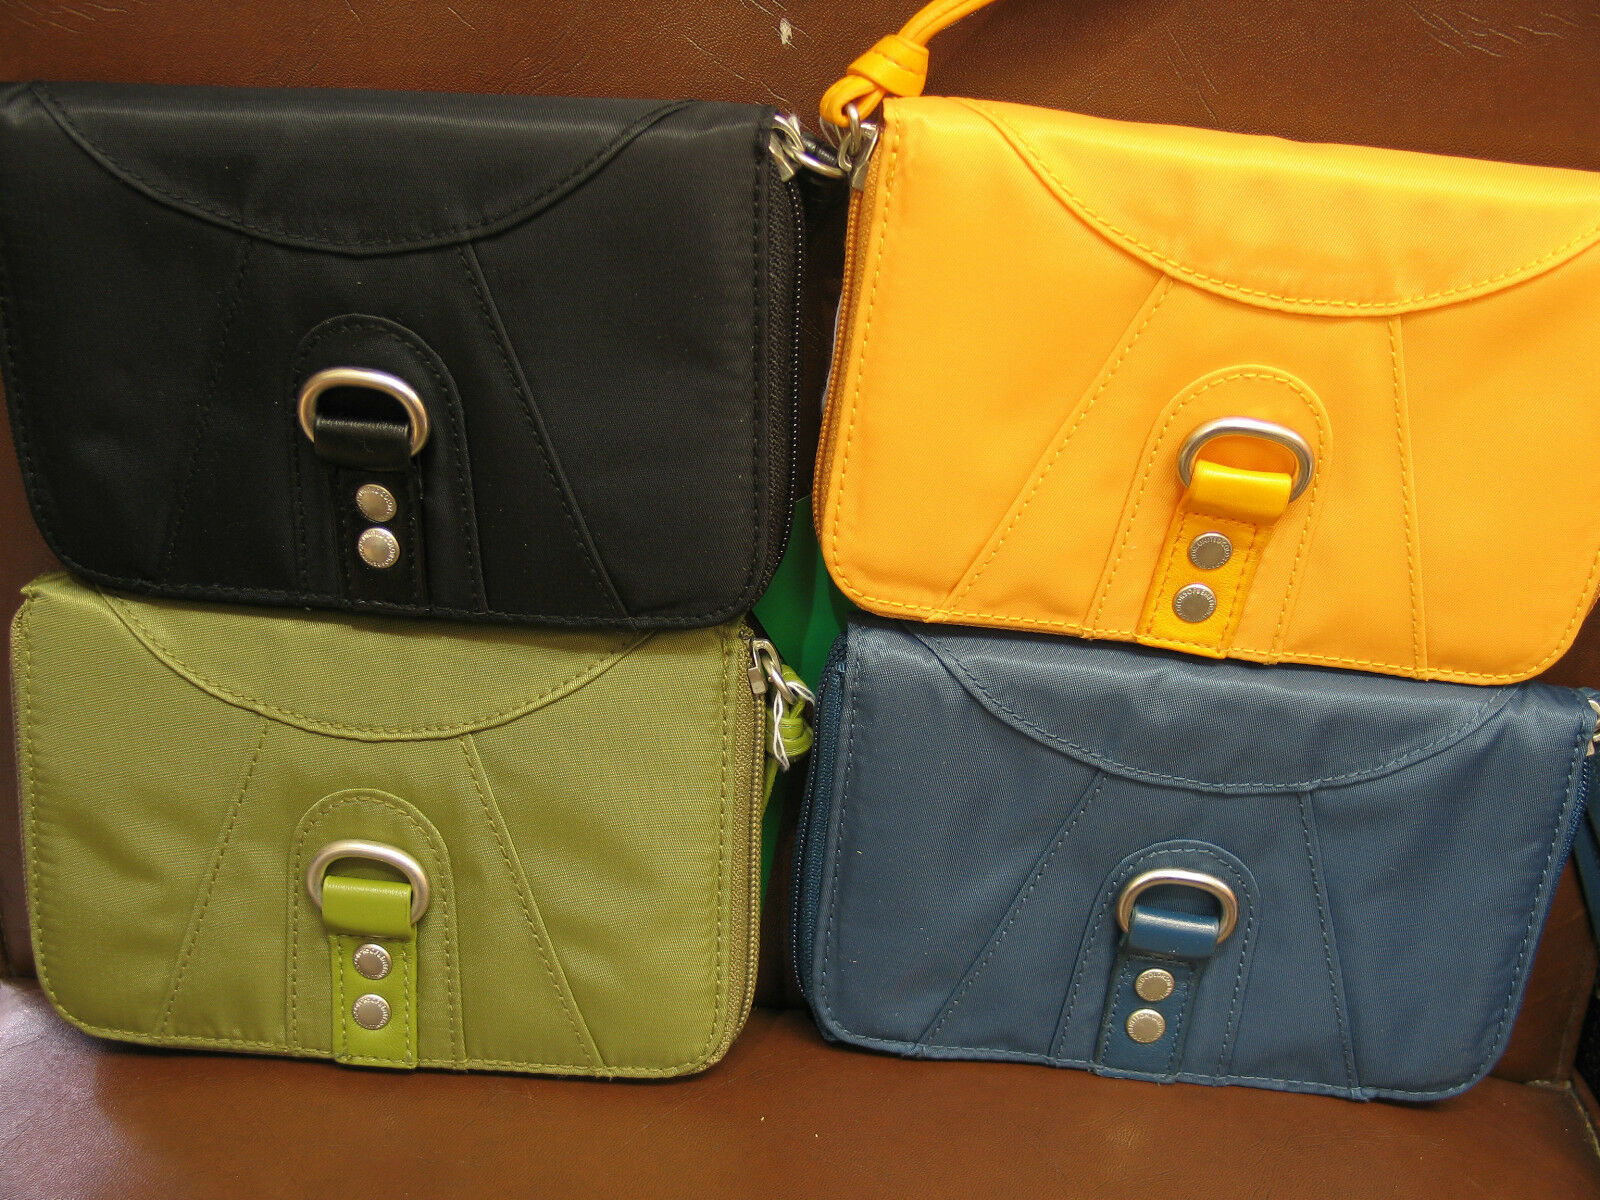 NEW BOXED UNITED COLORS OF BENETTON SWAY SMALL WALLET - 4 COLOURS